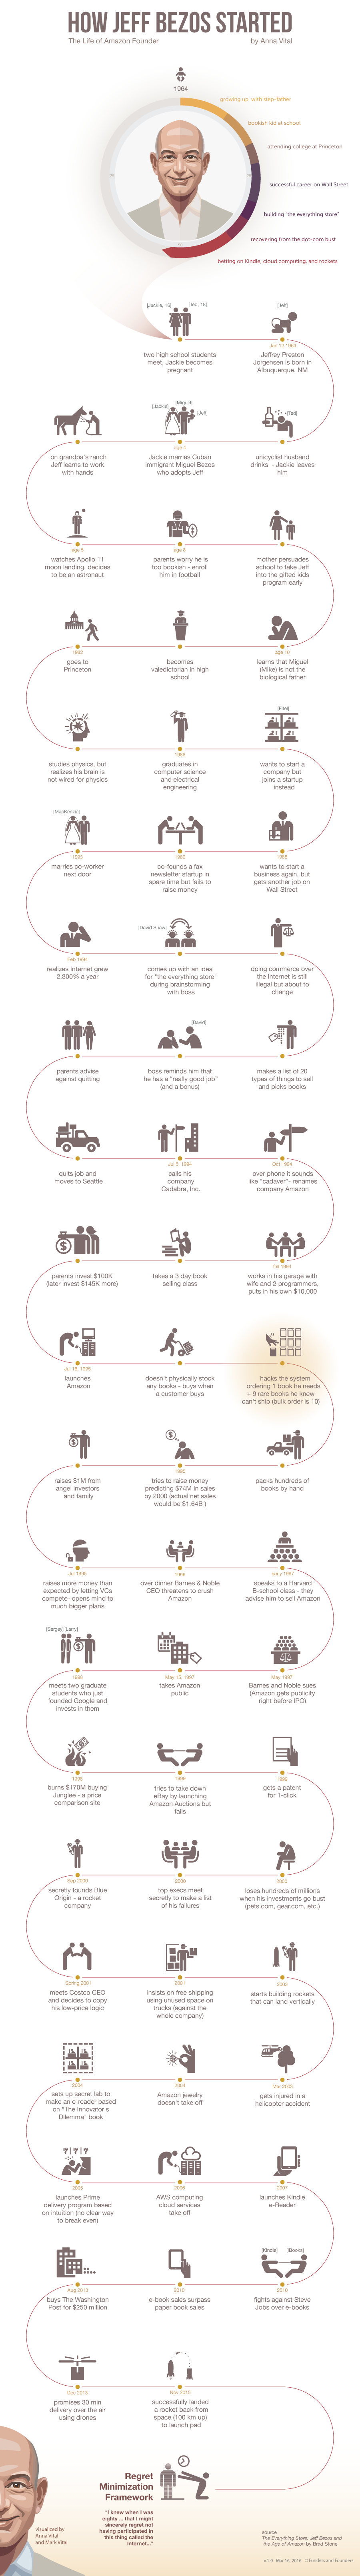 How Jeff Bezos Started #Infographic